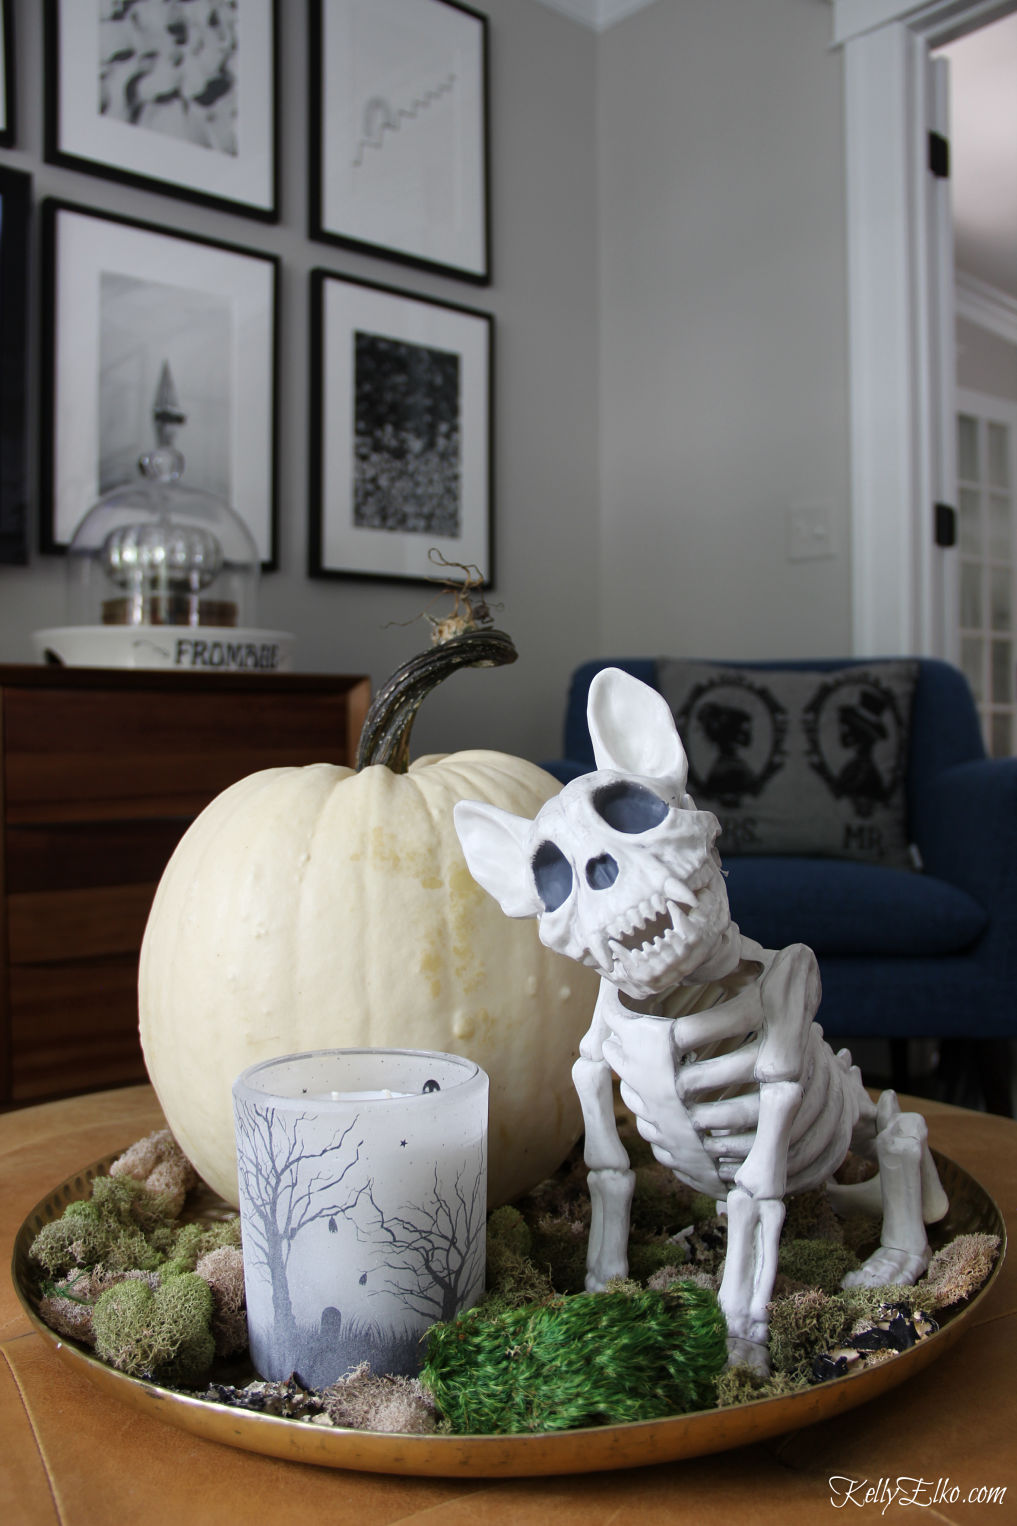 Creative Halloween Home Tour - love this adorable little dog skeleton! kellyelko.com #halloween #halloweendecor #falldecor #halloweendecorations #falldecorations #skeleton #dogskeleton